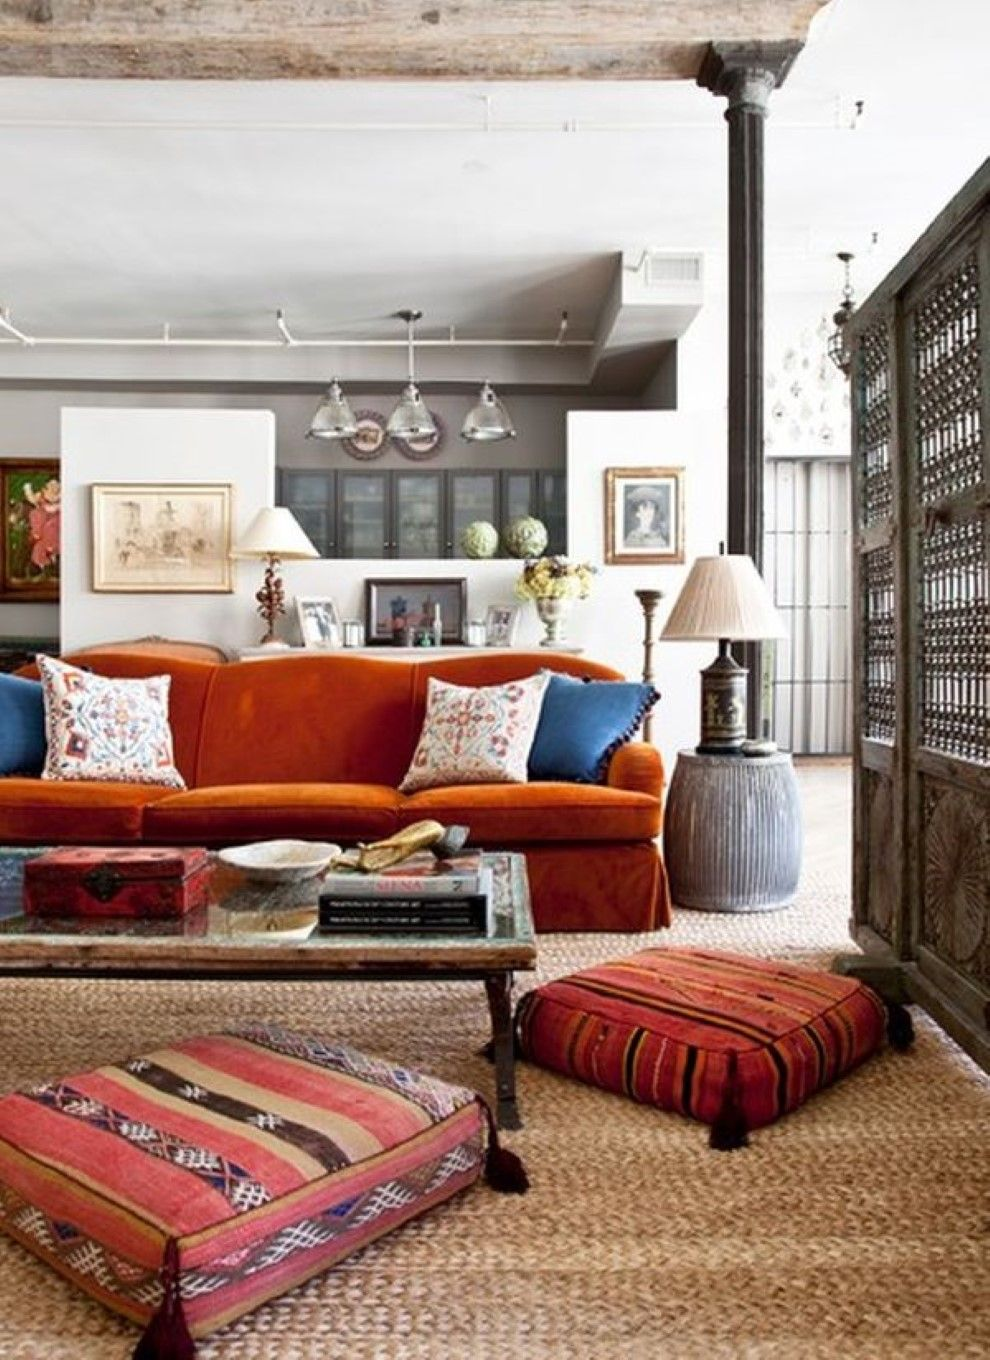 pillows house compelling pillow moroccan you blog home floor reasons your in poufpile why need